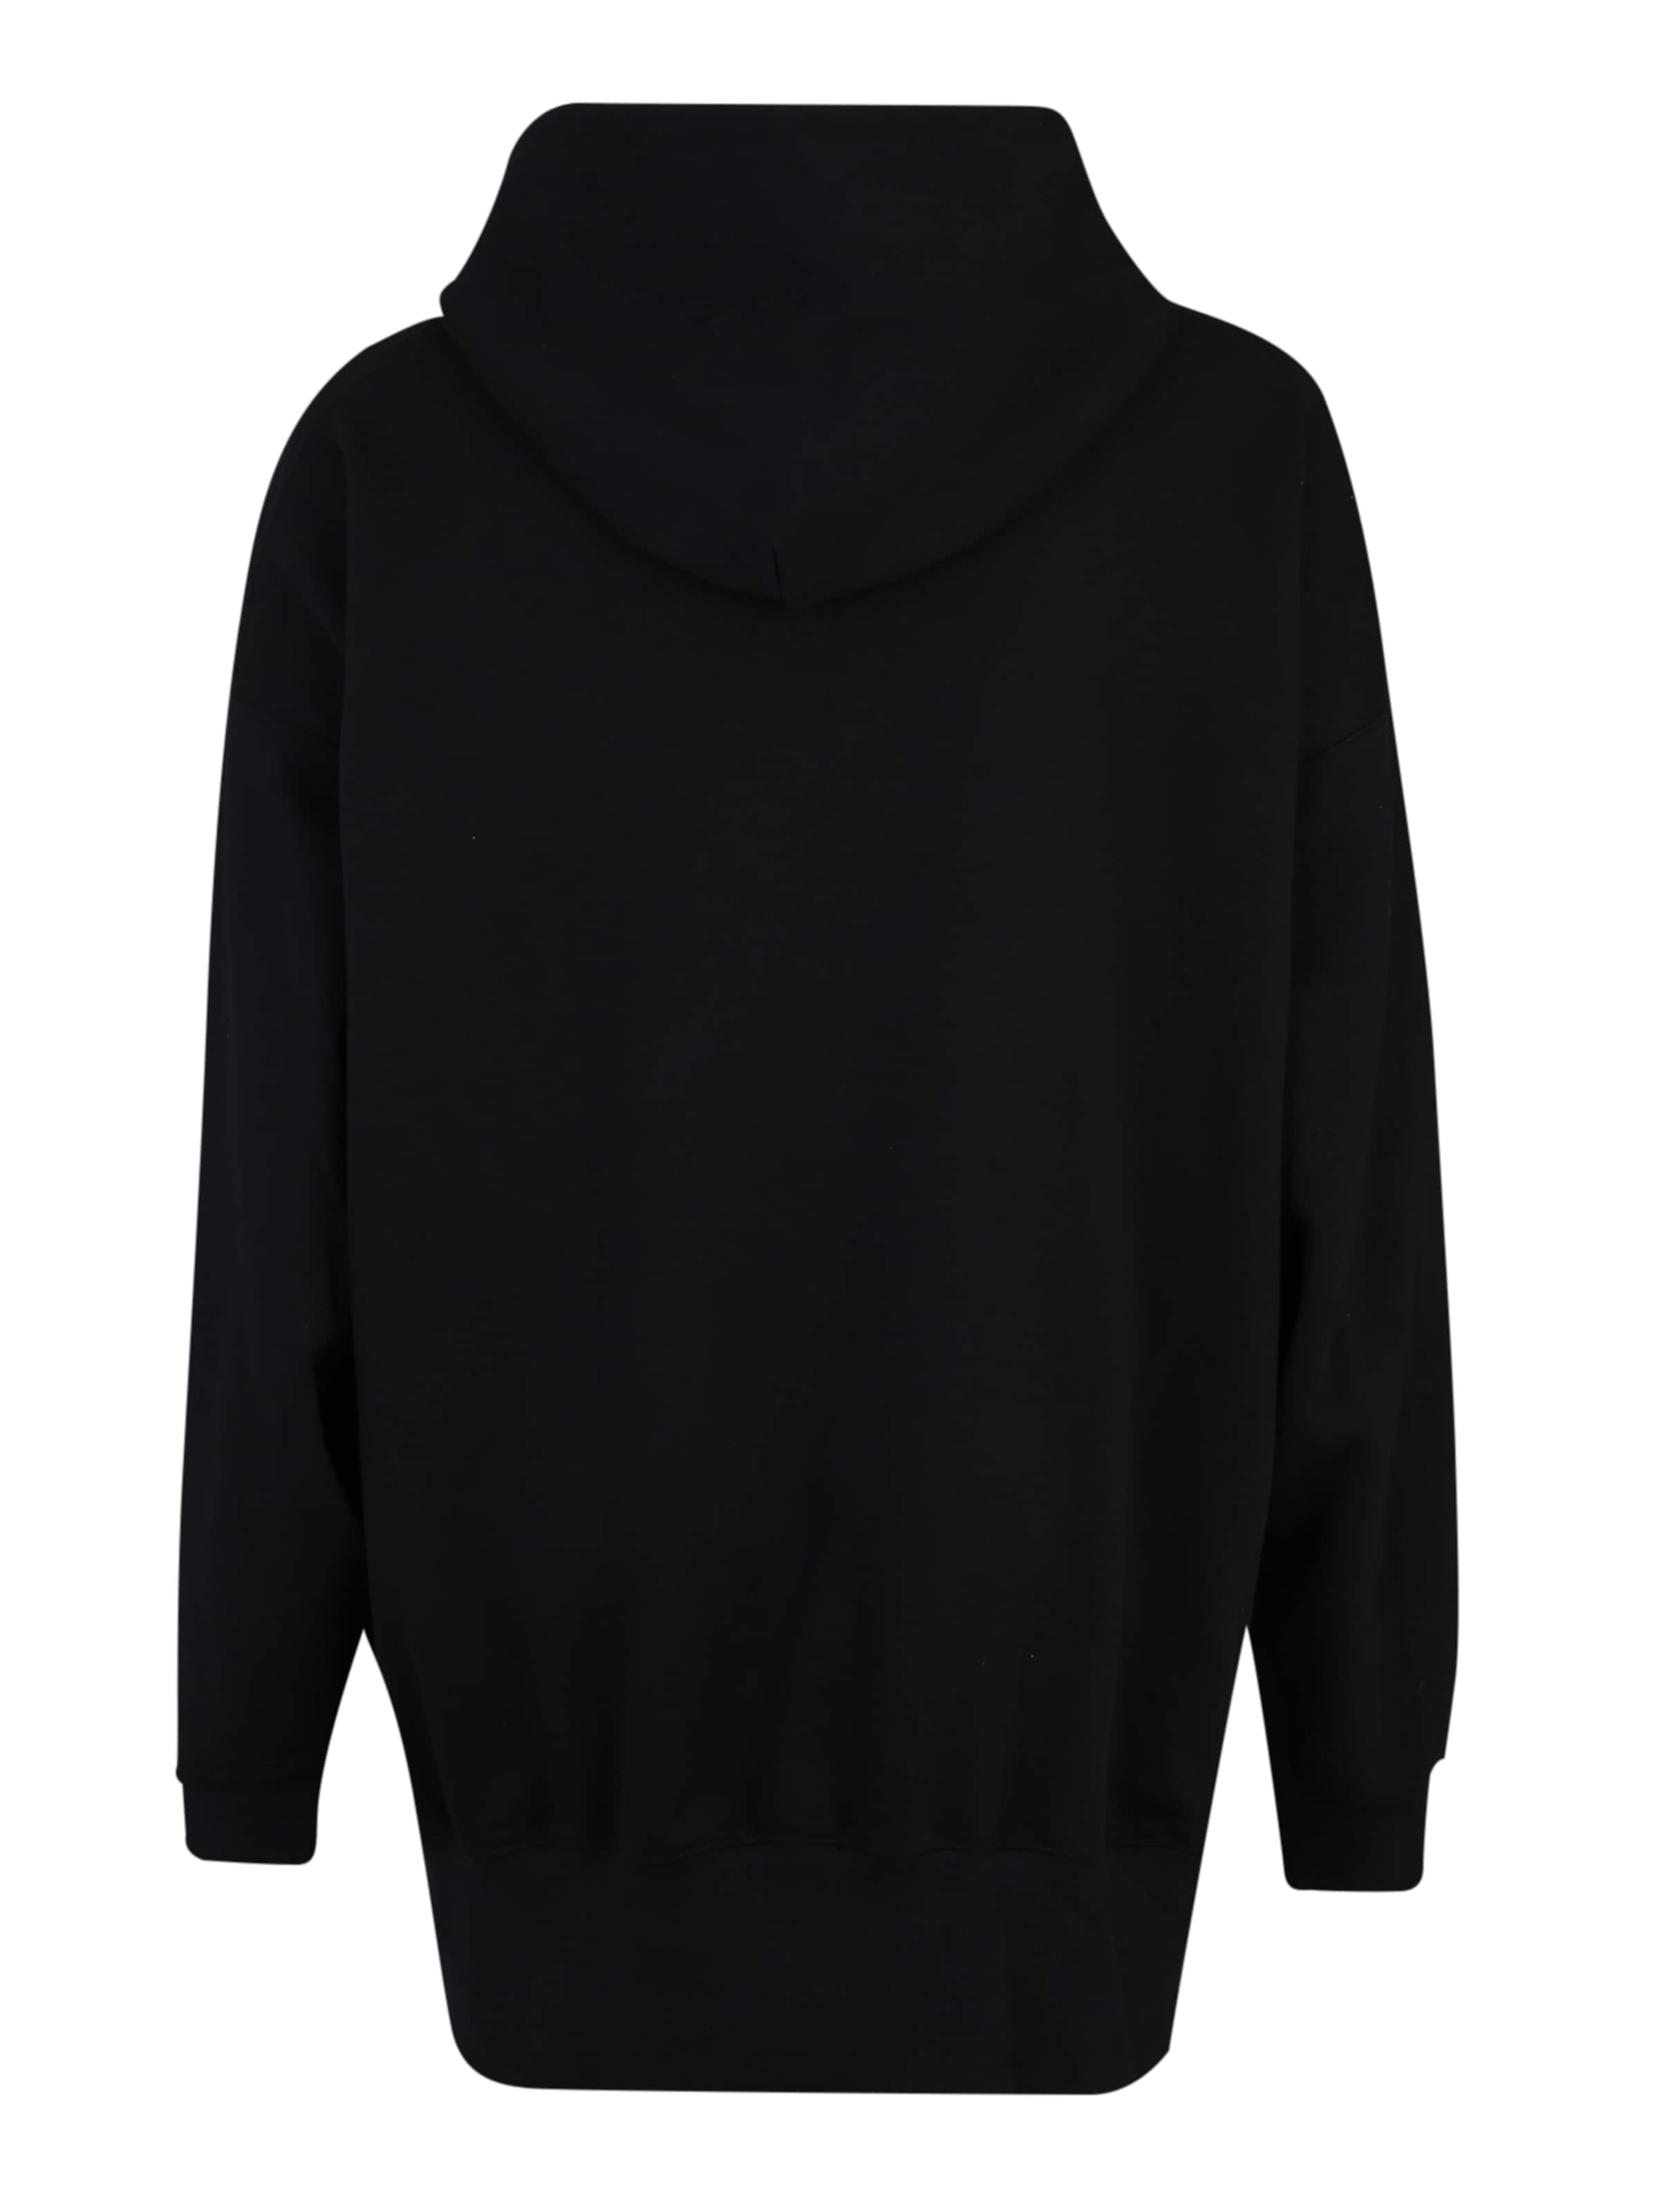 Urban Noir Curvy En shirt Sweat Classics nO80PwkX